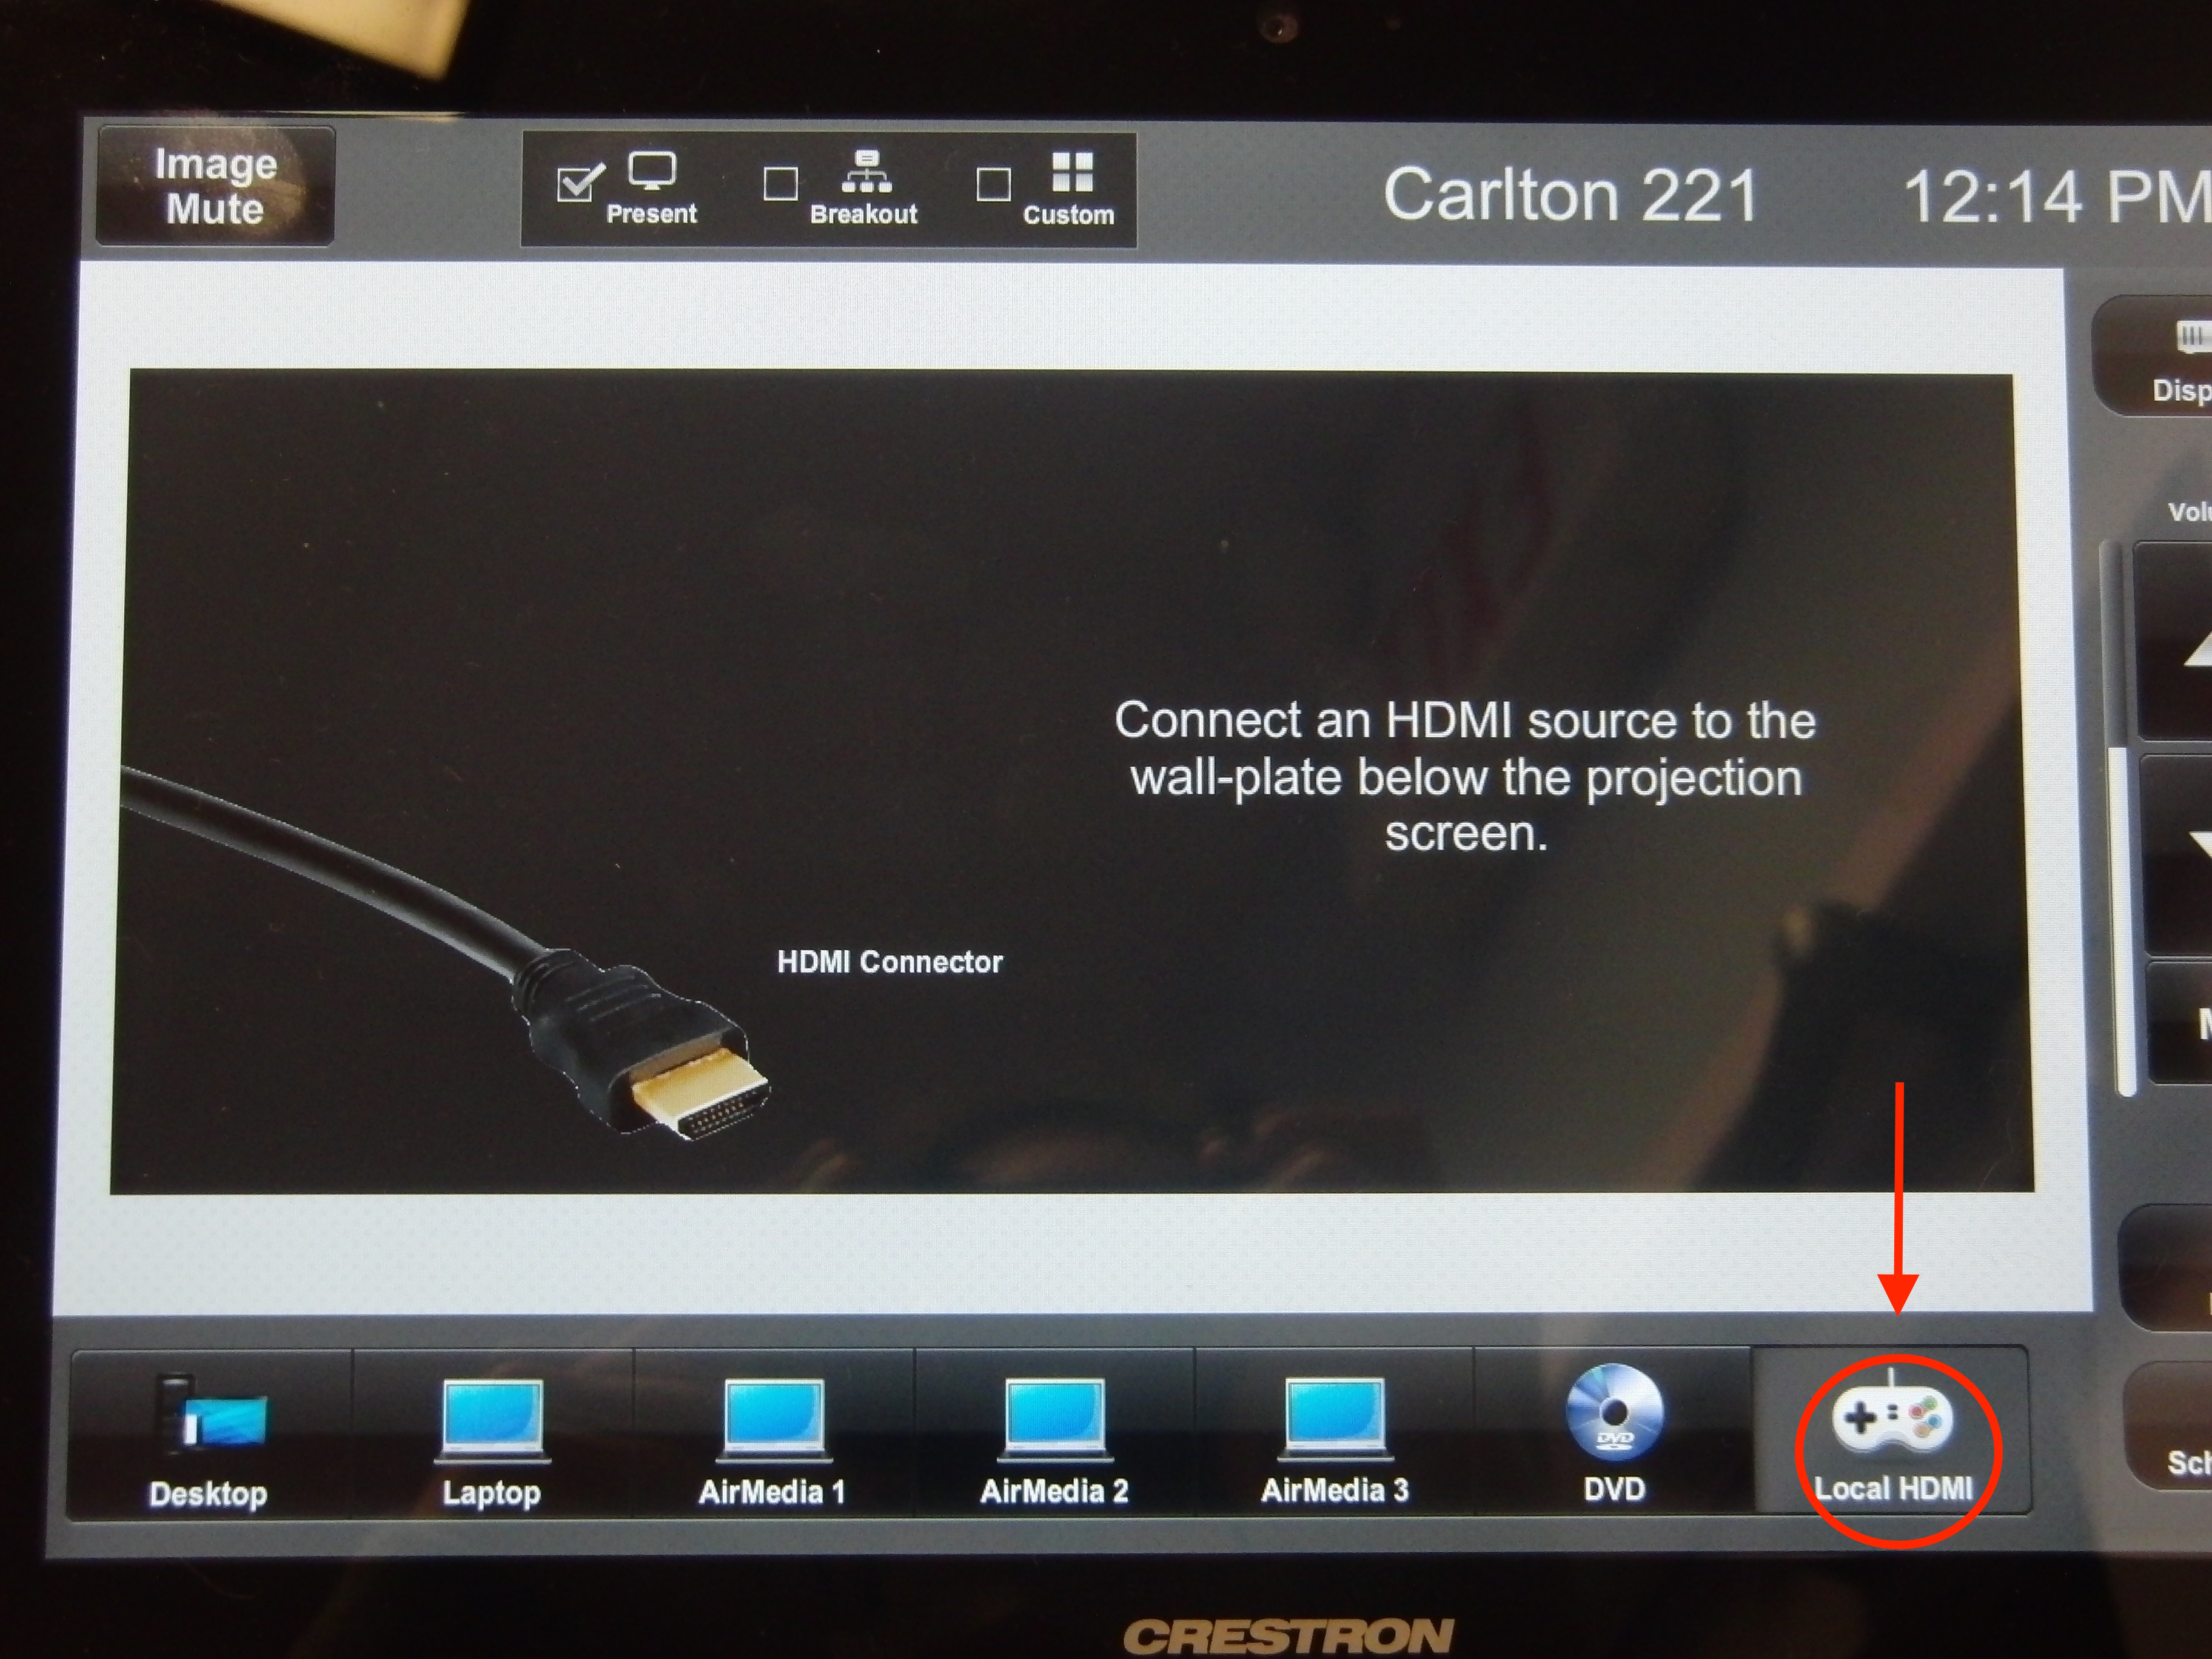 Photo of crestron control touch panel highlighting the HDMI gaming console